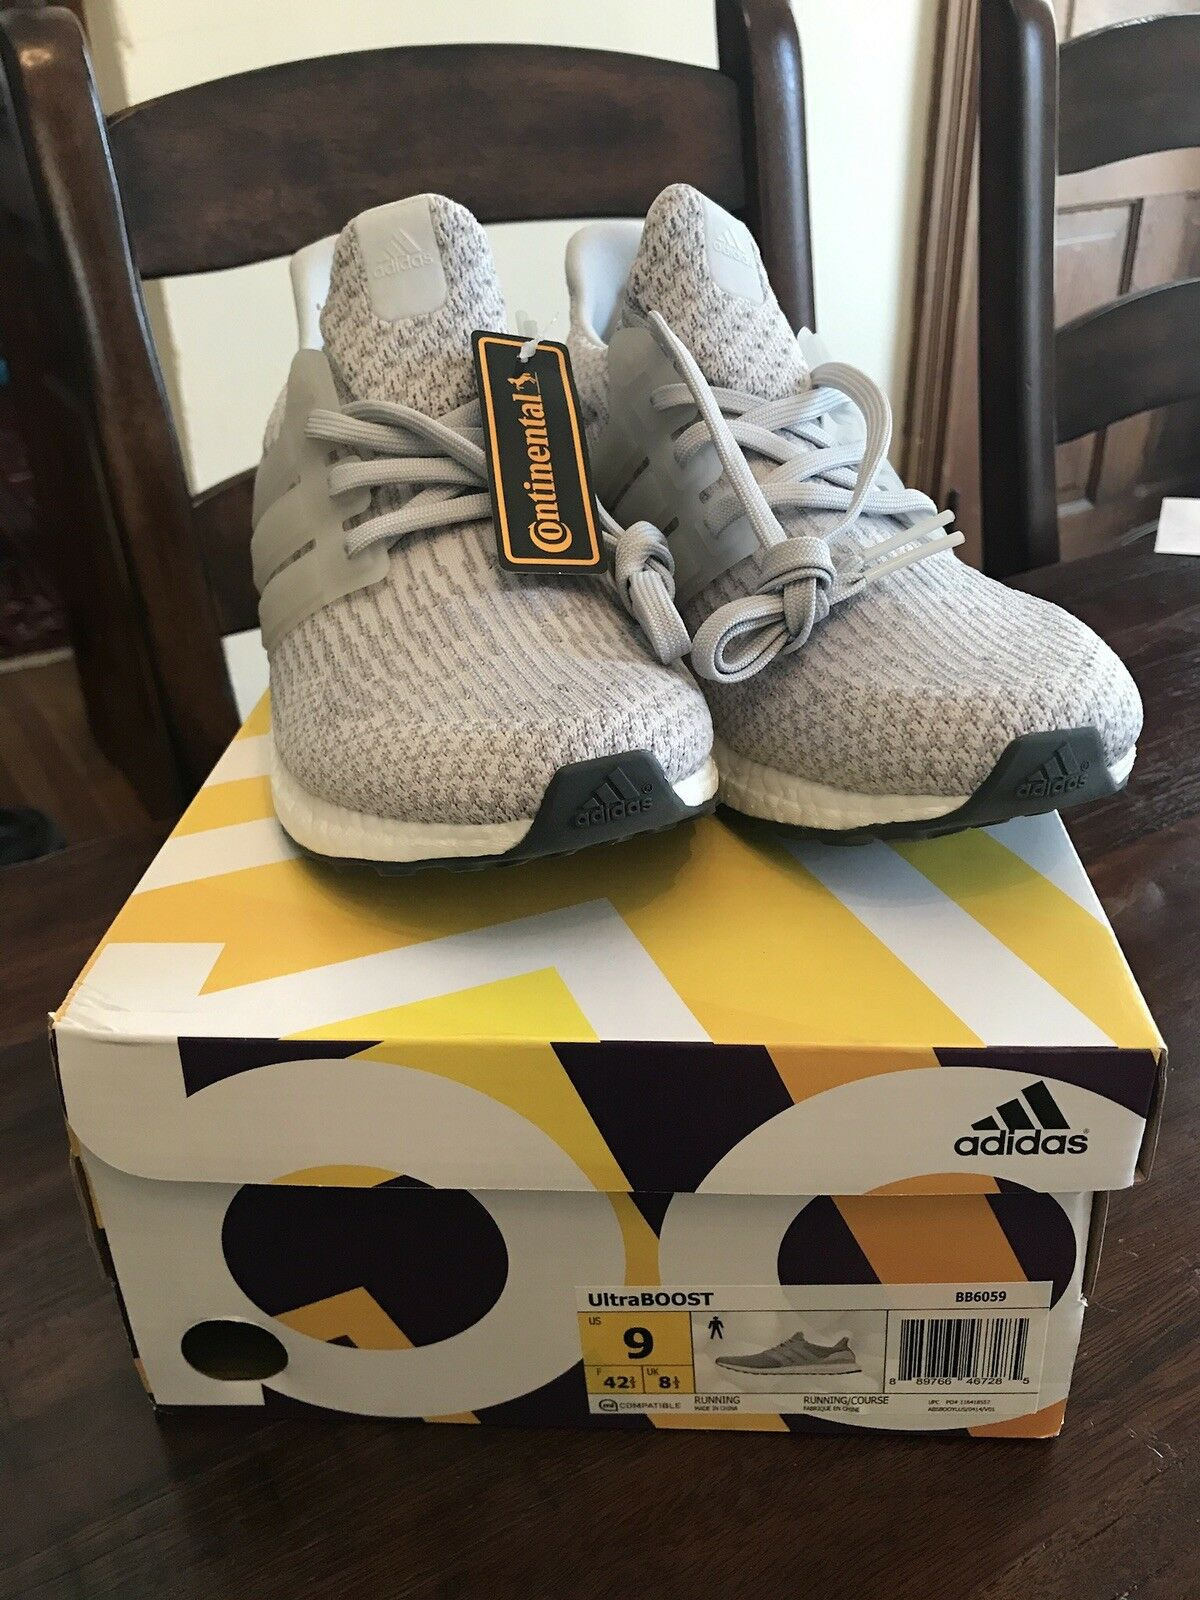 Brand New Adidas Ultra Boost 3.0 Clear Grey men's size 9